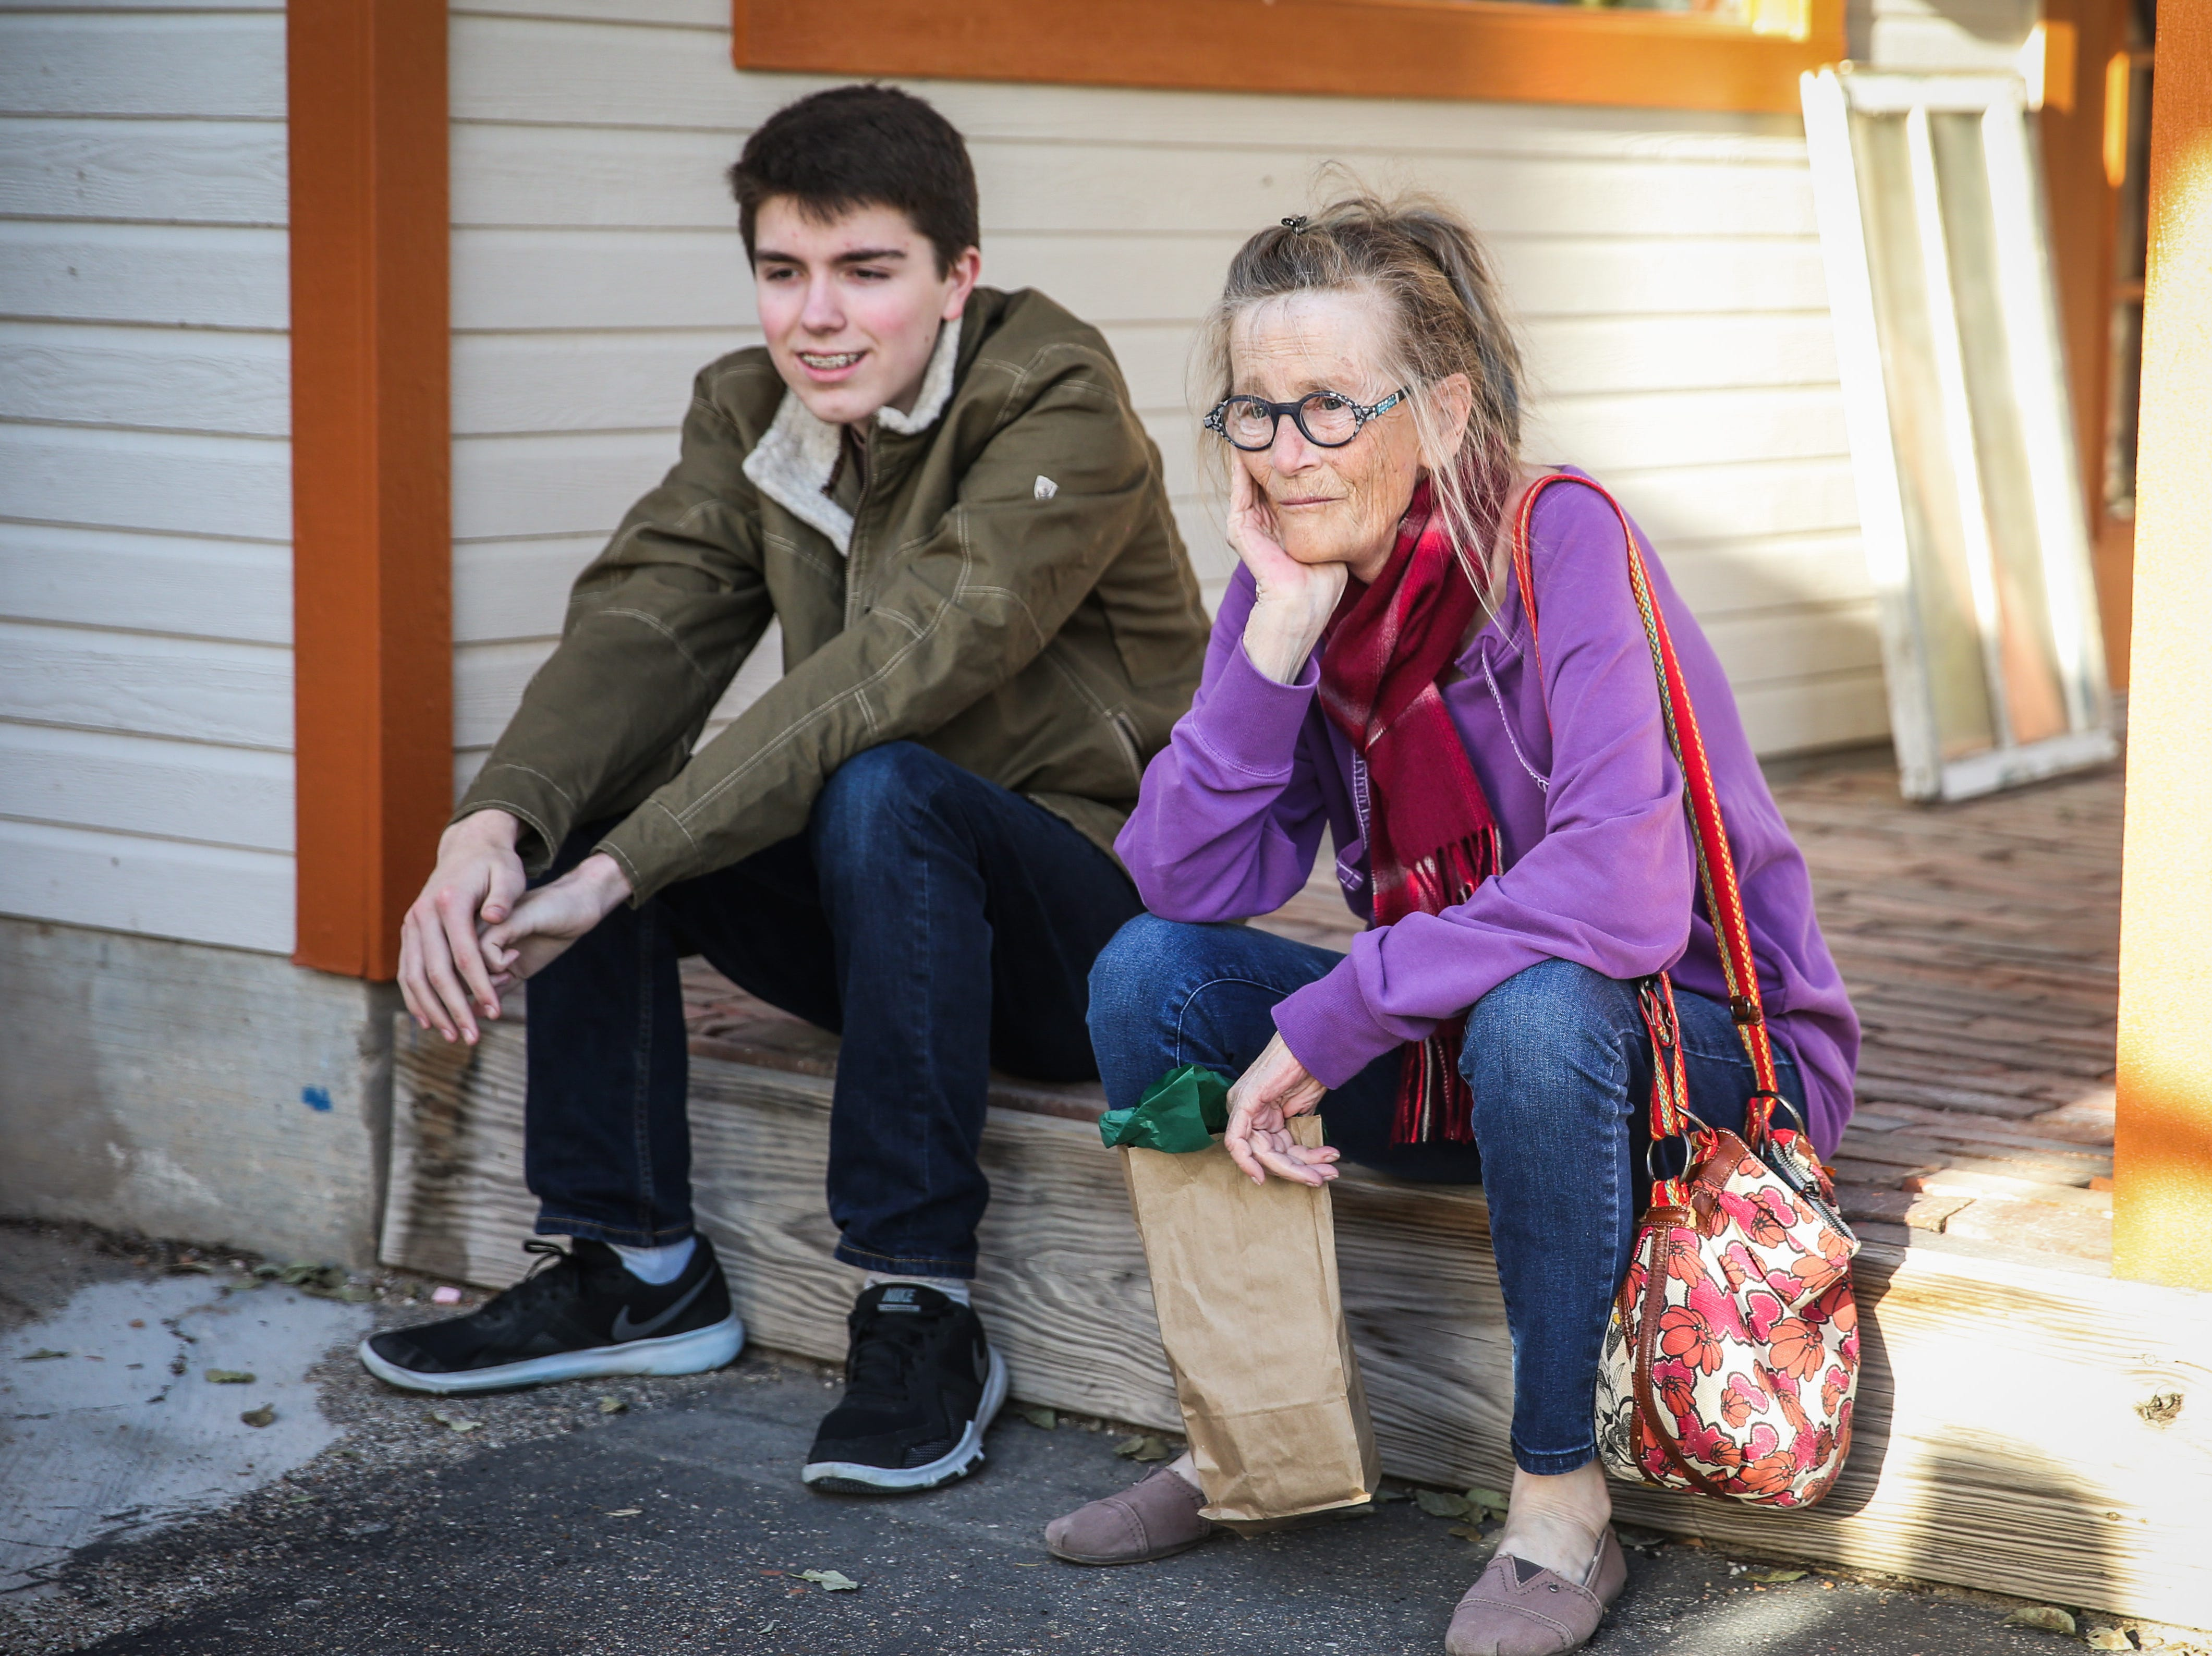 Hayden Best, 16, and Kathleen Wilkinson rest while shopping during the Thanksgiving Open House Friday, Nov. 23, 2018, at the Chicken Farm Art Center.